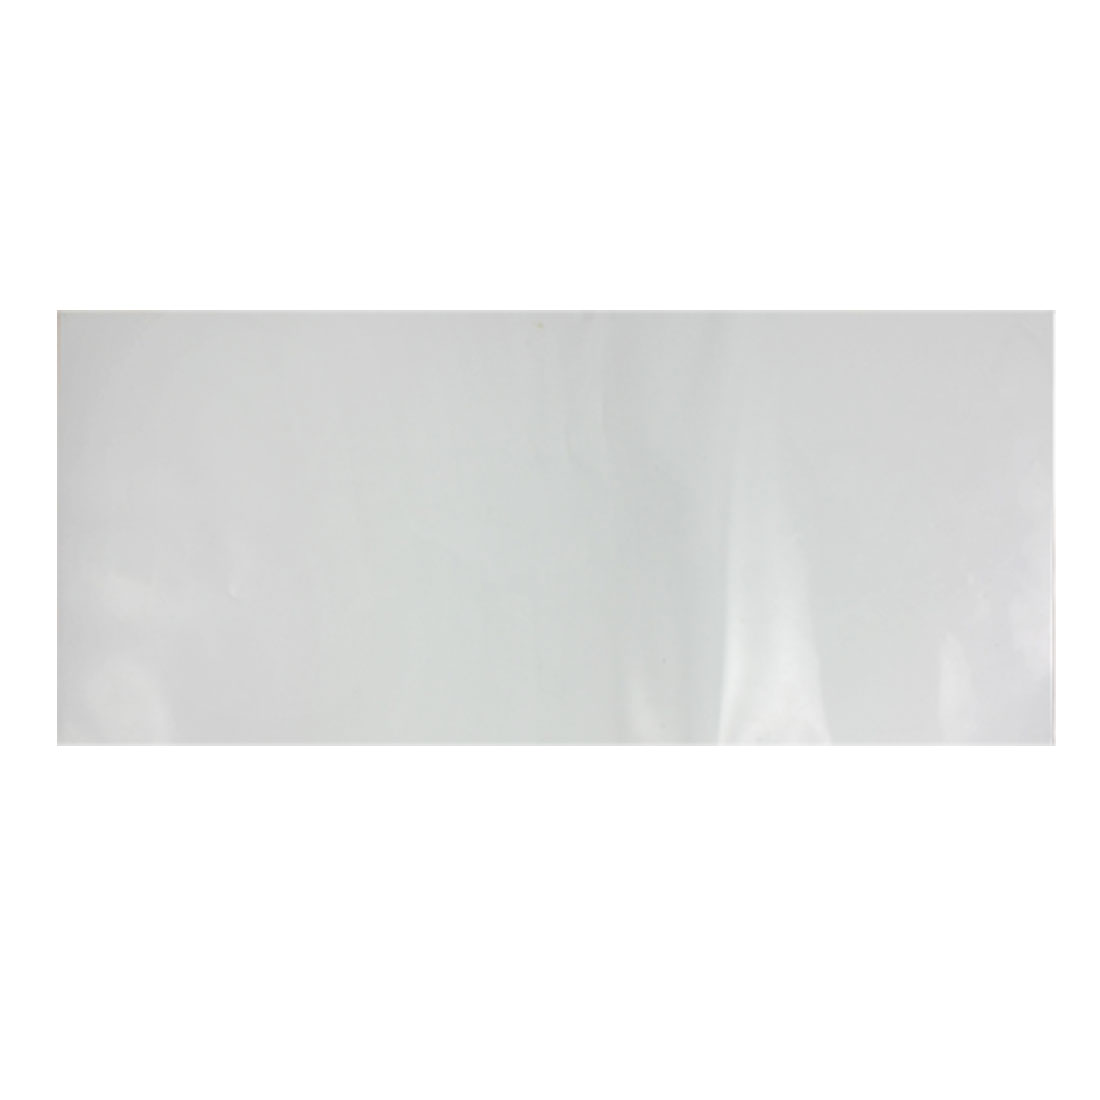 400mm x 205mm x 1.0mm CPU Heat Conductive Silicone Sheet Offwhite